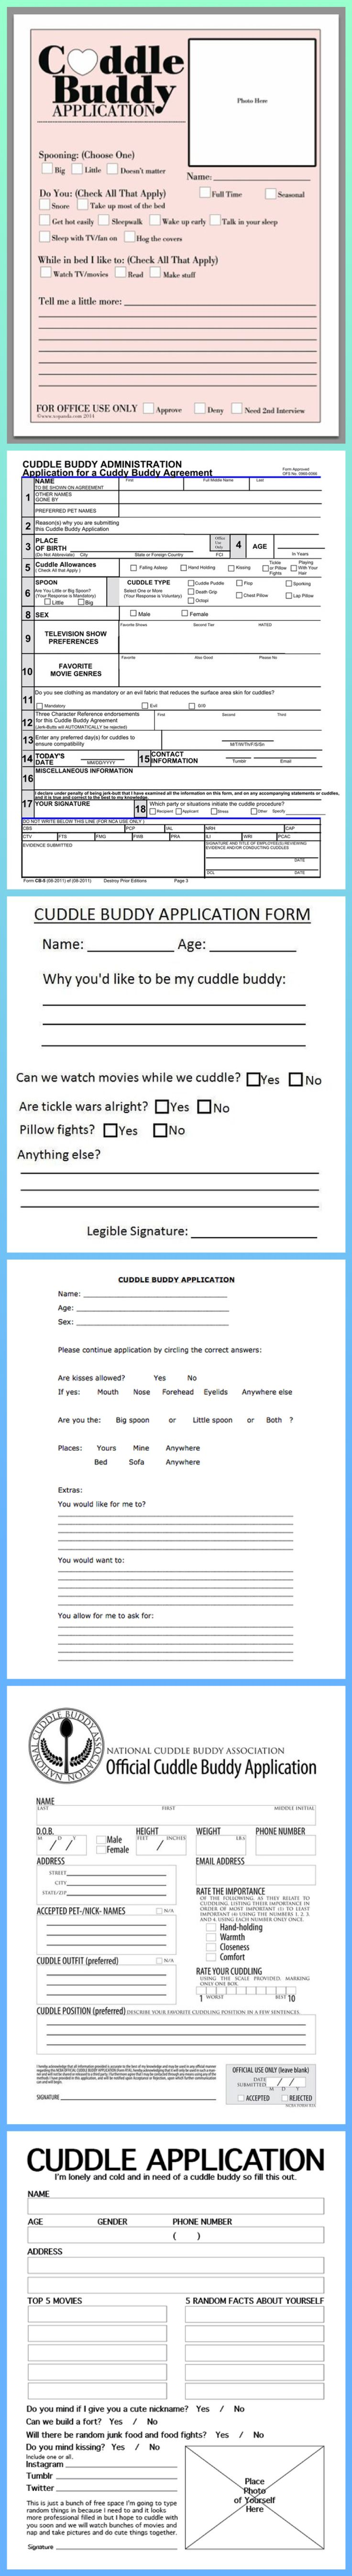 Cuddle Buddy Application Forms